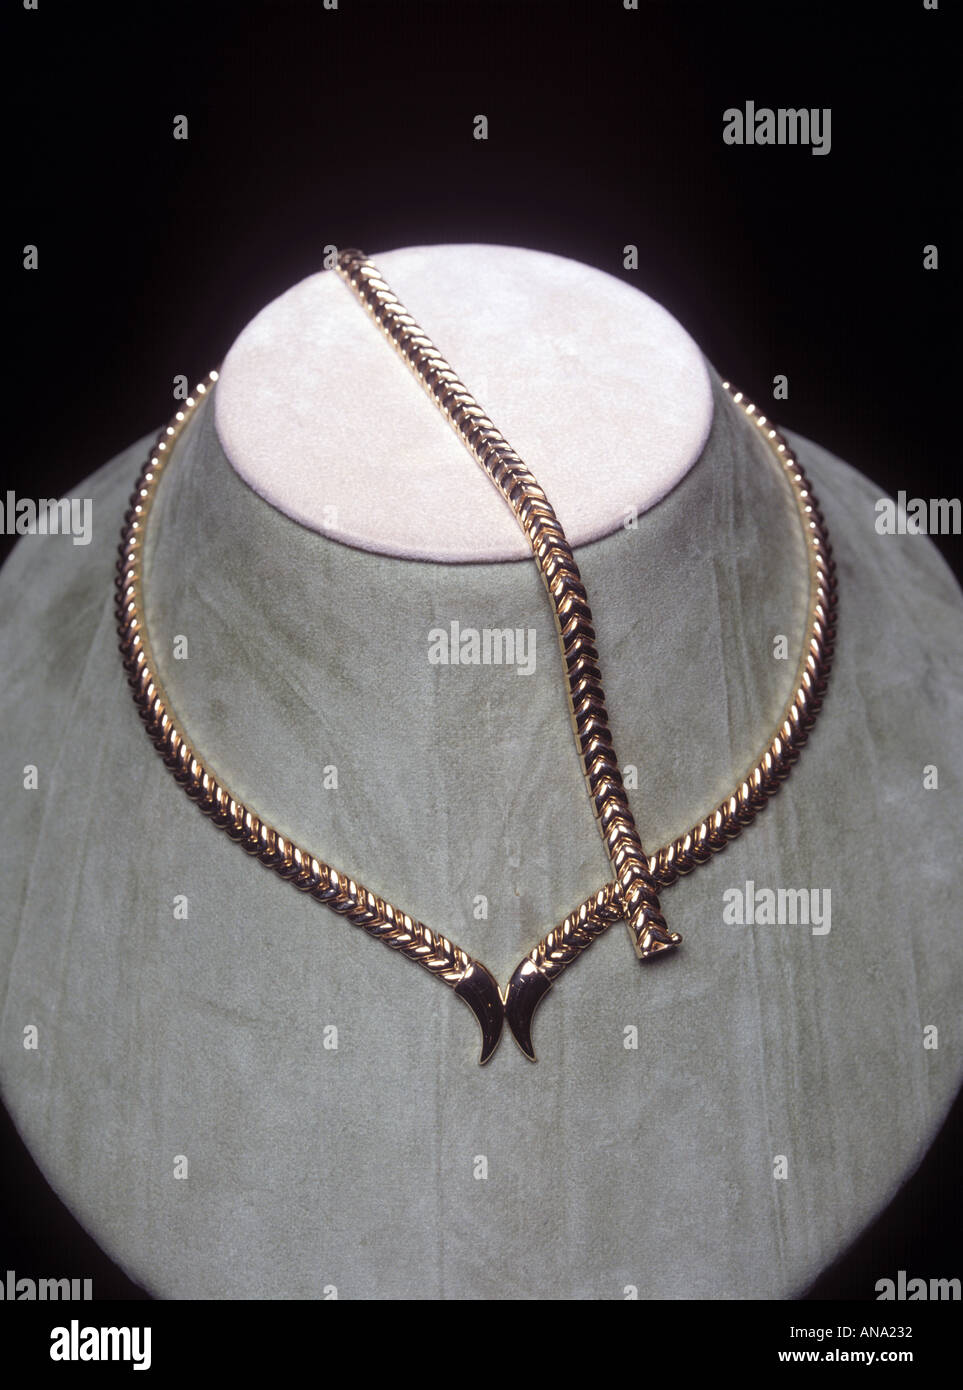 gold necklace on display - Stock Image